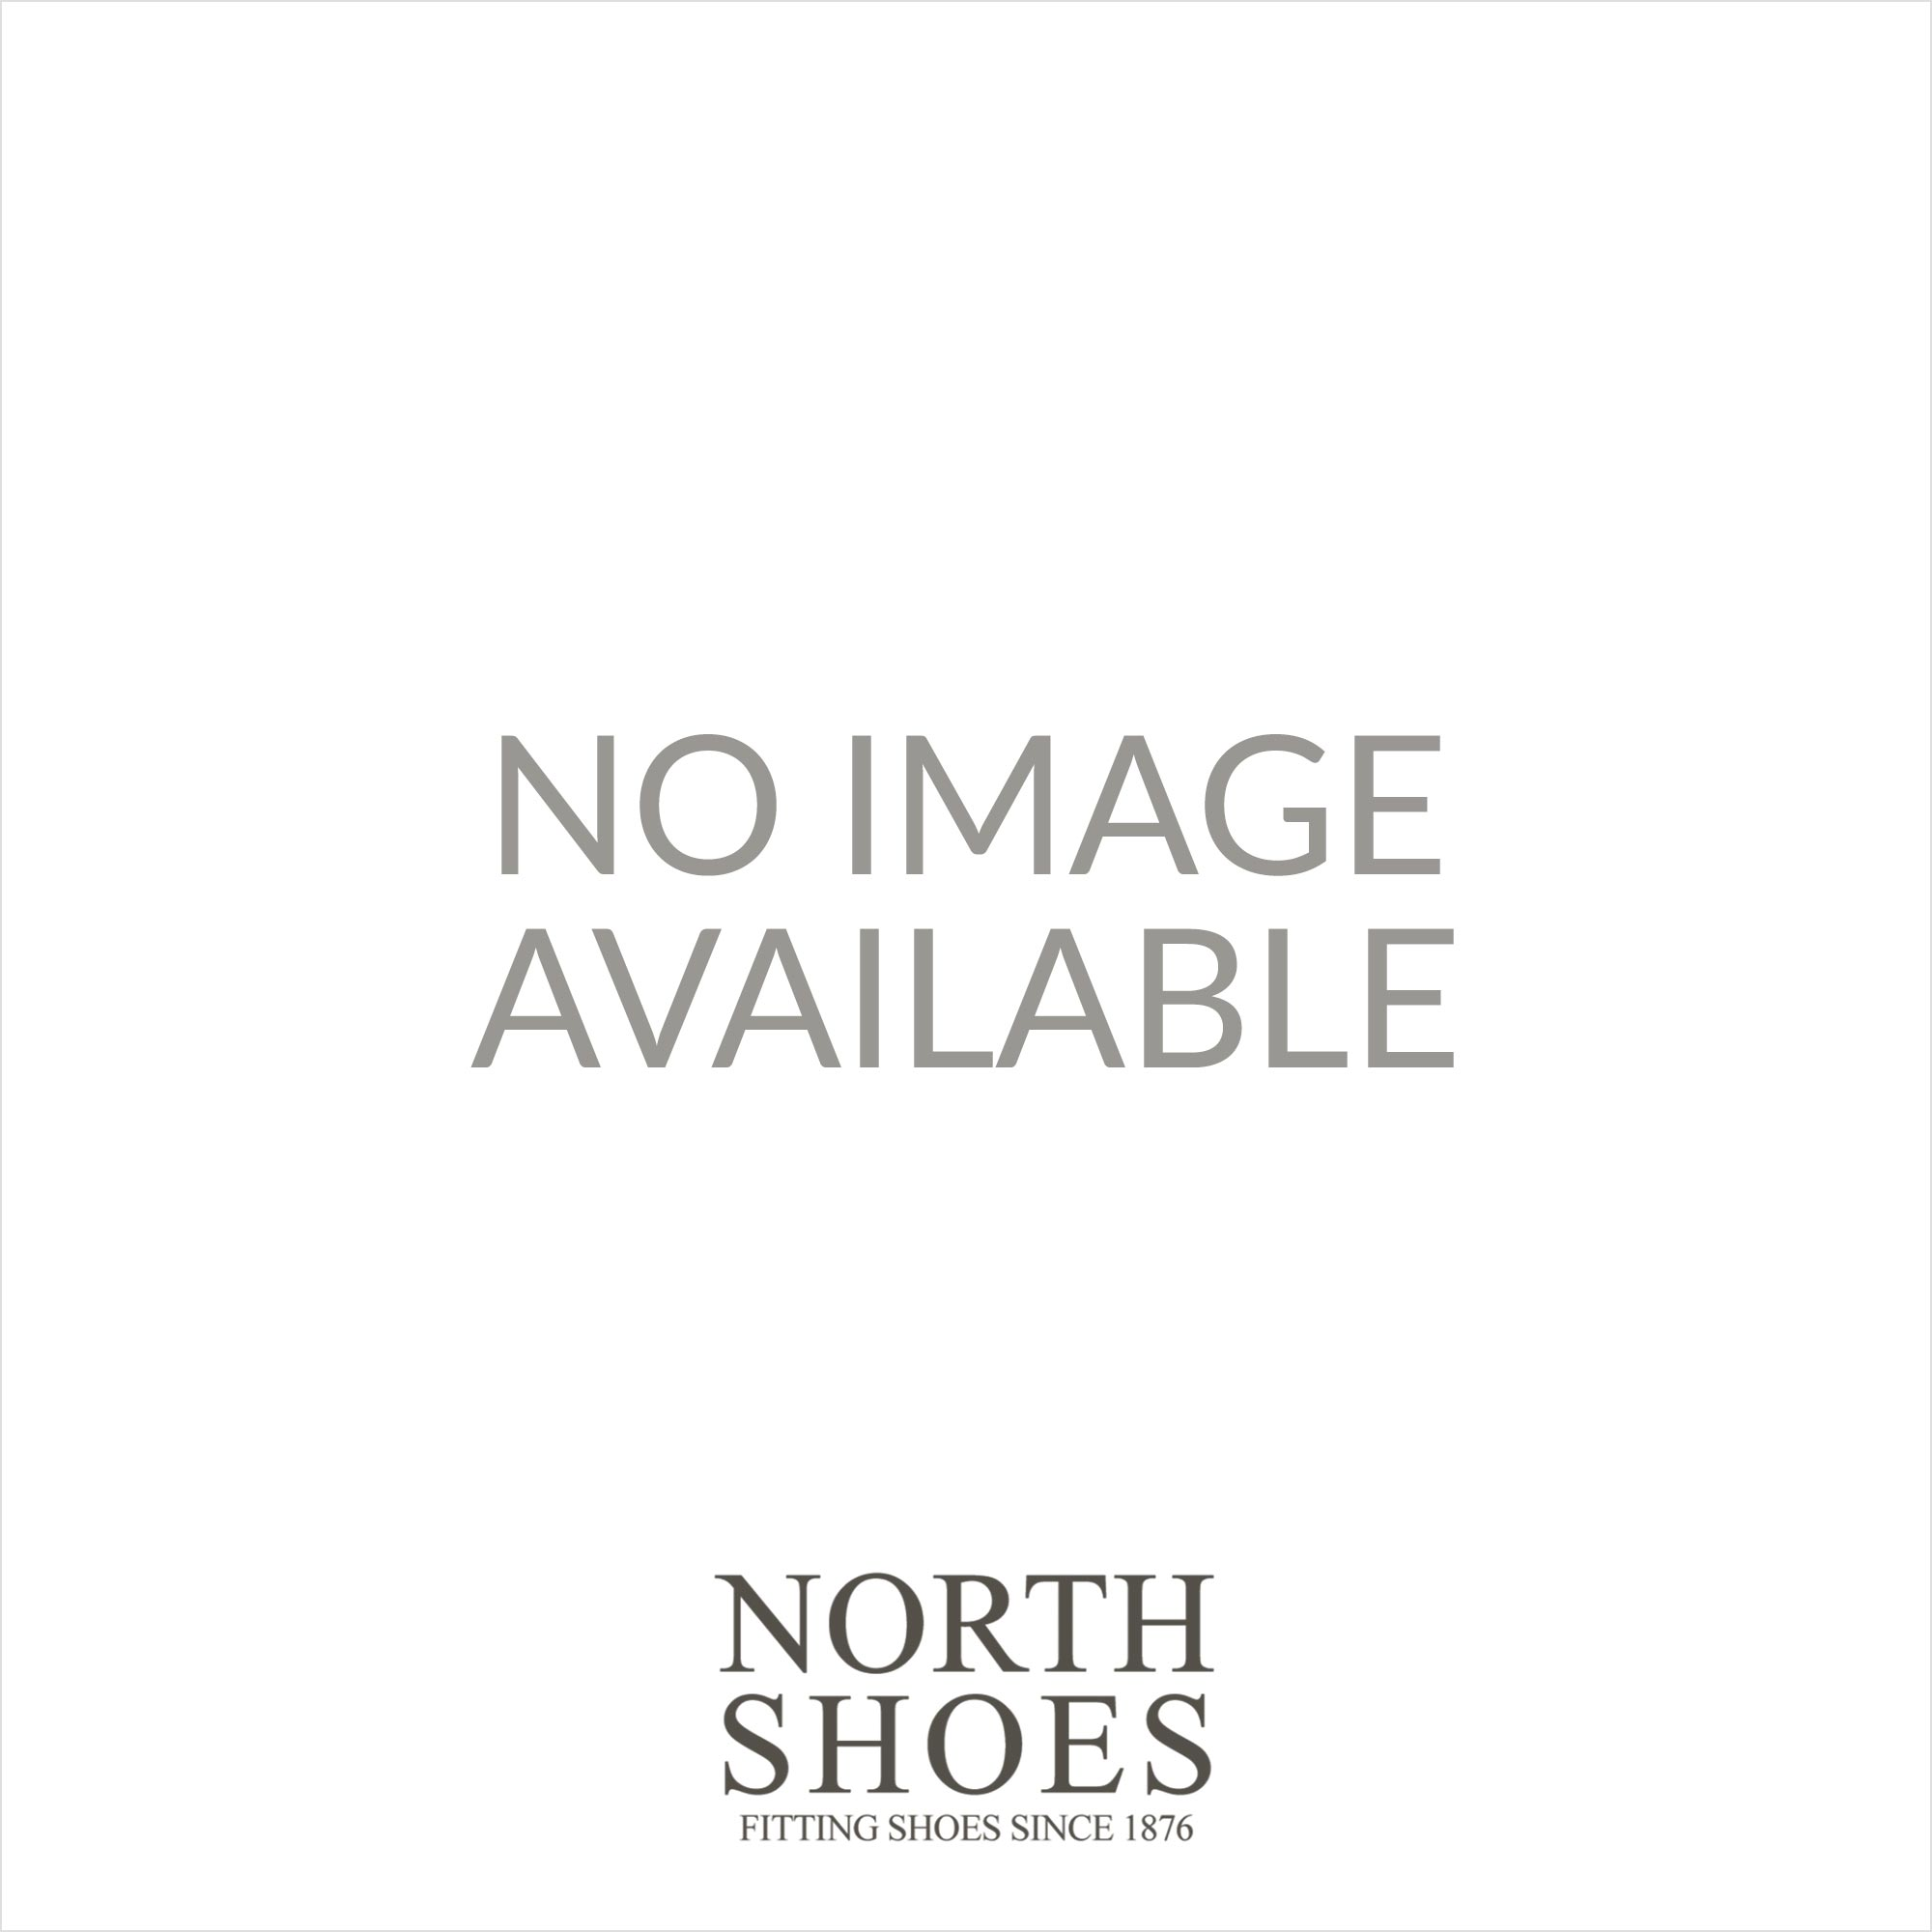 80d30f1a8 Fitflop Lulu Red Leather Womens Slip On Toe Post Sandals - Fitflop from  North Shoes UK